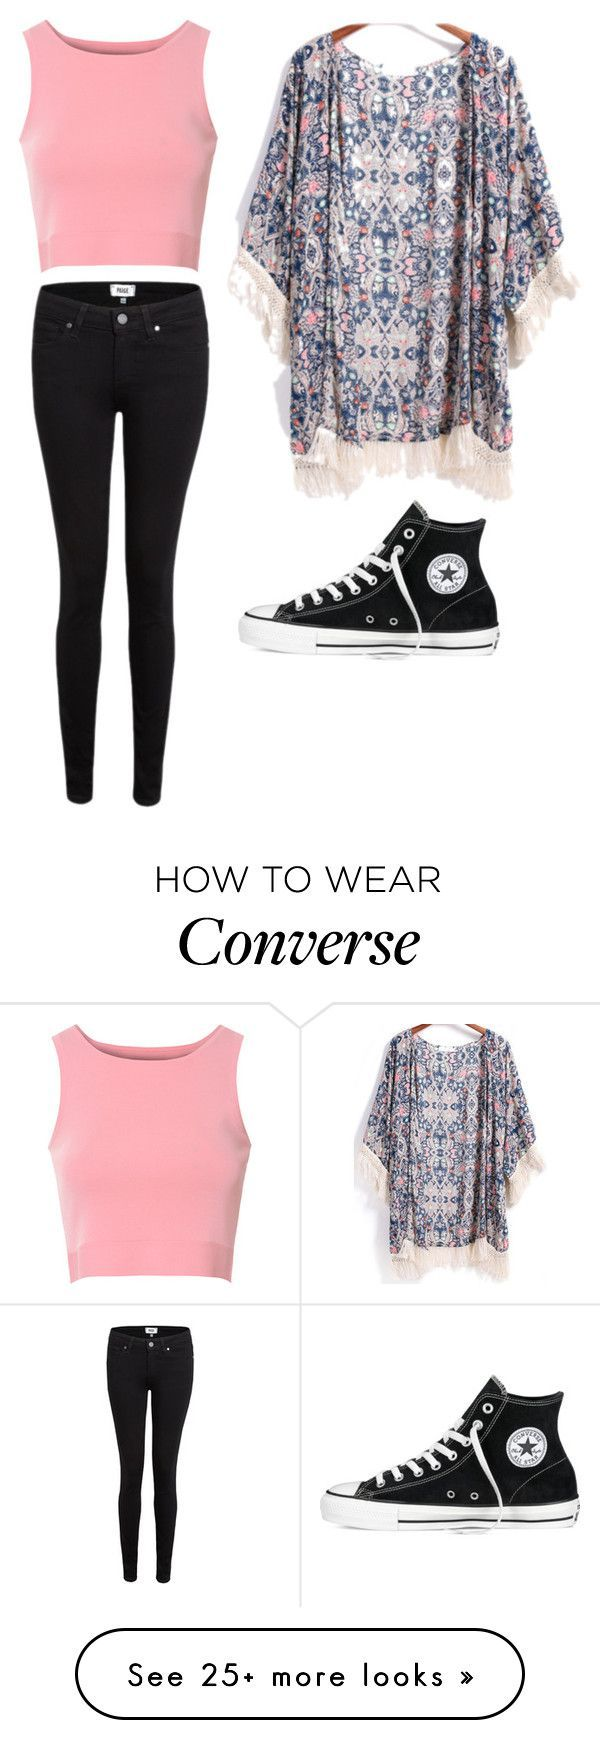 Summer outfit ideas for school pictures